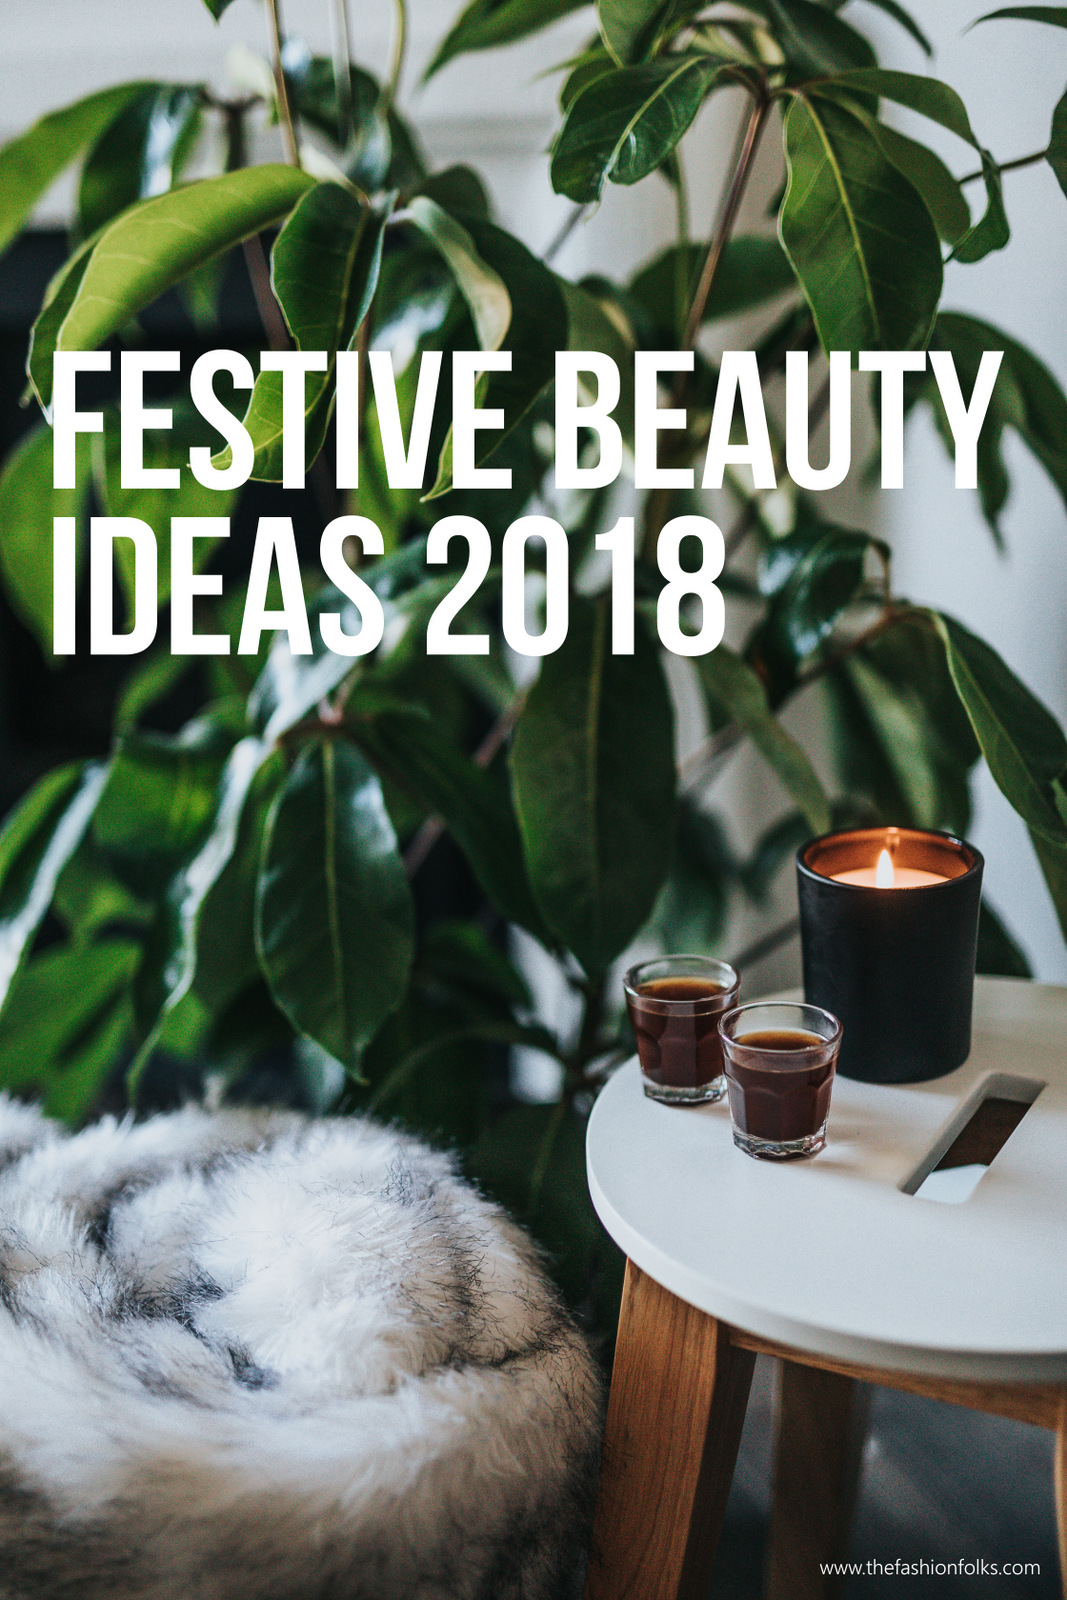 Festive Beauty Ideas 2018